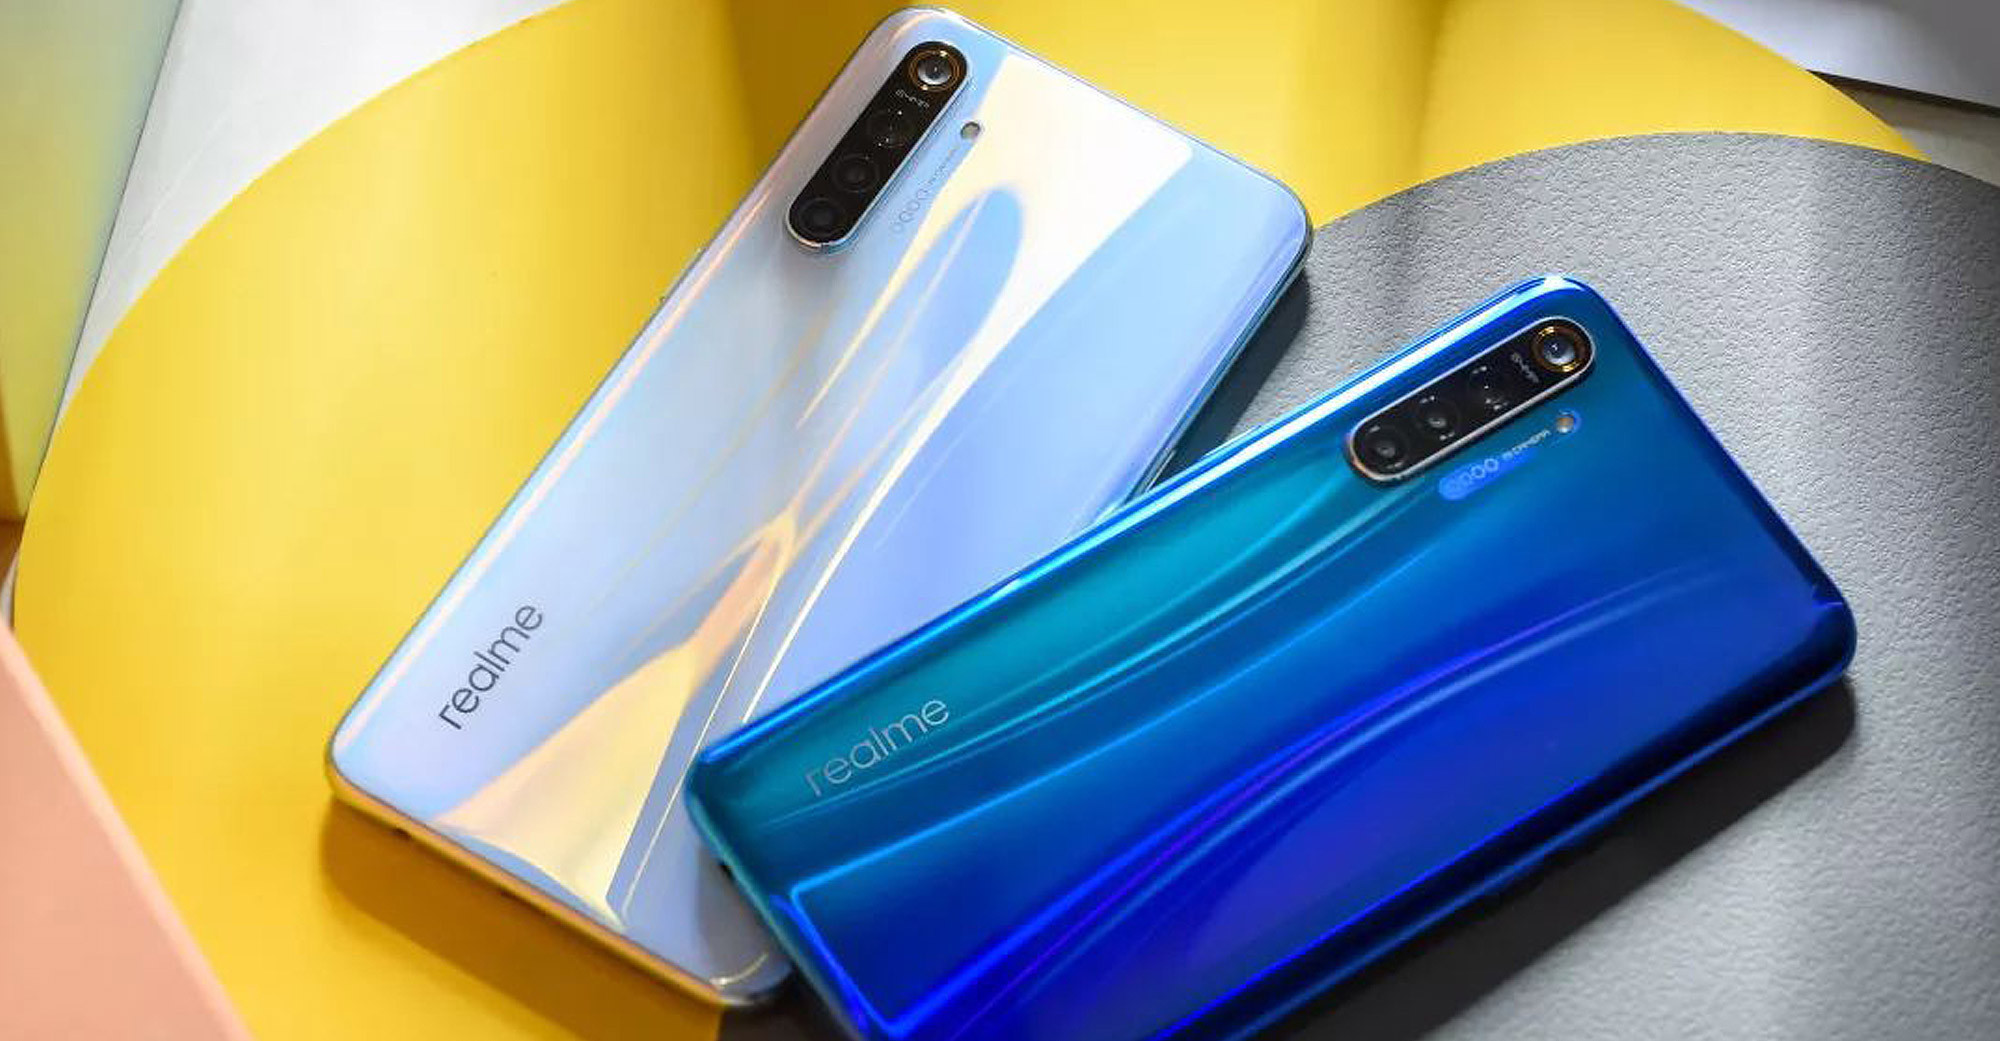 Realme X2 Pro: Incorporating Snapdragon 855+, Will it Worth to Buy?